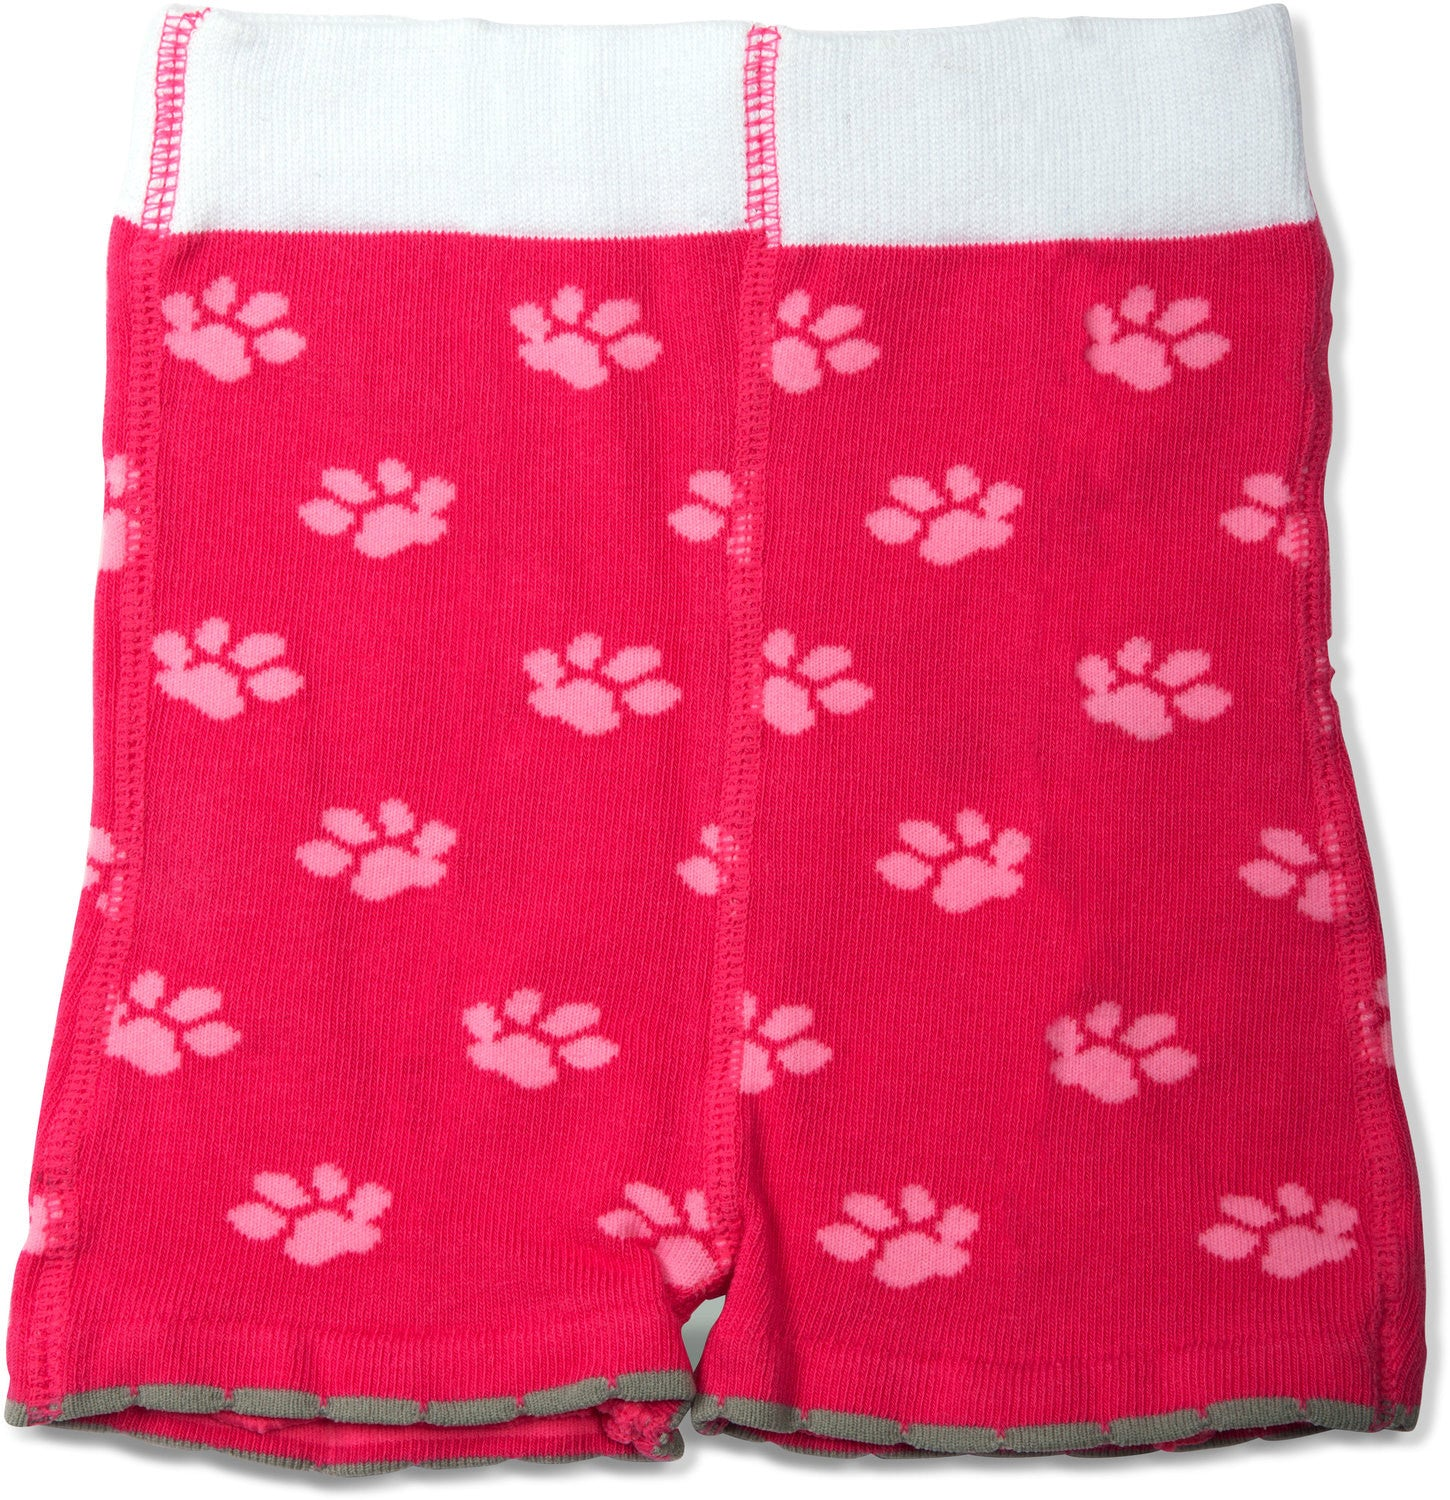 44f9cb9e13 Pink Kitty Baby Shorts   Izzy & Owie   Giggles Gear